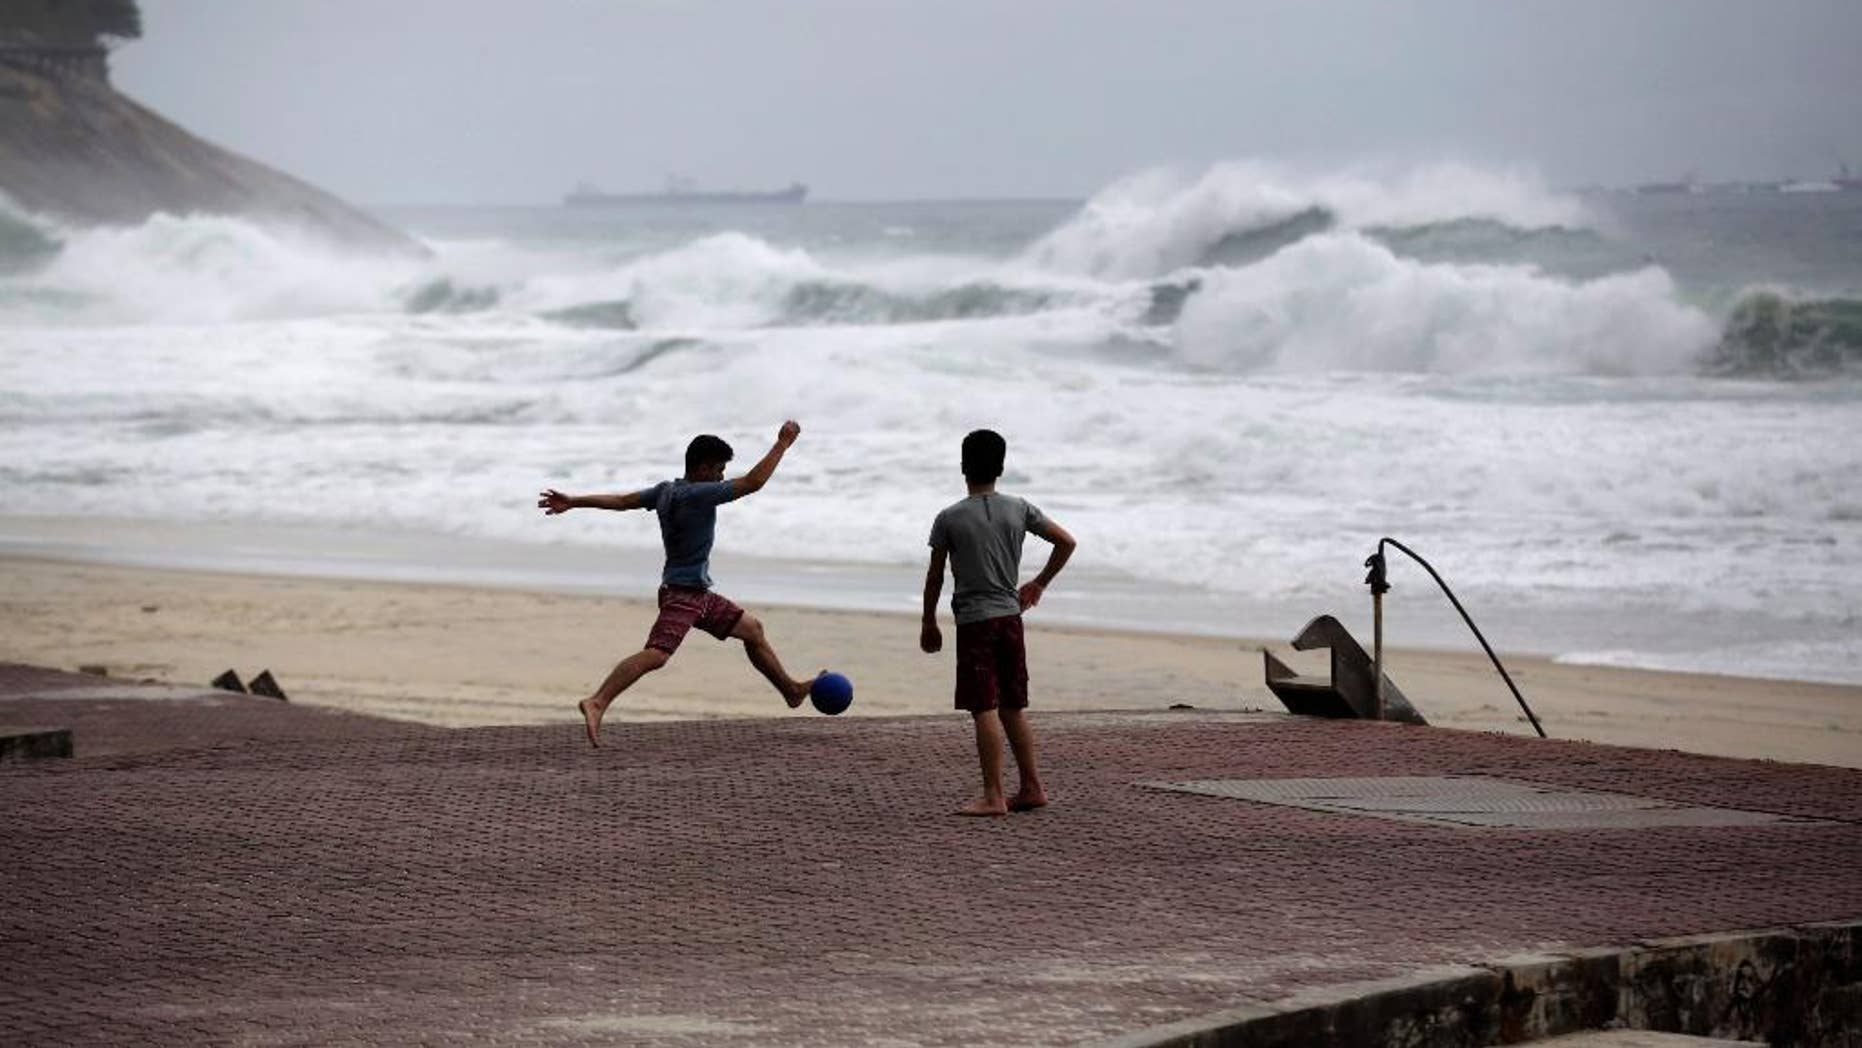 "FILE - In this June 20, 2014 file photo, boys play football as waves break on Sao Conrado beach in Rio de Janeiro, Brazil. World Surf League spokesman Dave Prodan said in an emailed statement Wednesday, April 29, 2015, that Sao Conrado beach had to be removed from its venue list ""due to pollution issues."" The beach had been a backup for the May 11-22 Rio Pro event, to be used in case of sub-par waves or other issues at the primary venue, nearby Barra da Tijuca beach. (AP Photo/Matt Dunham, File)"